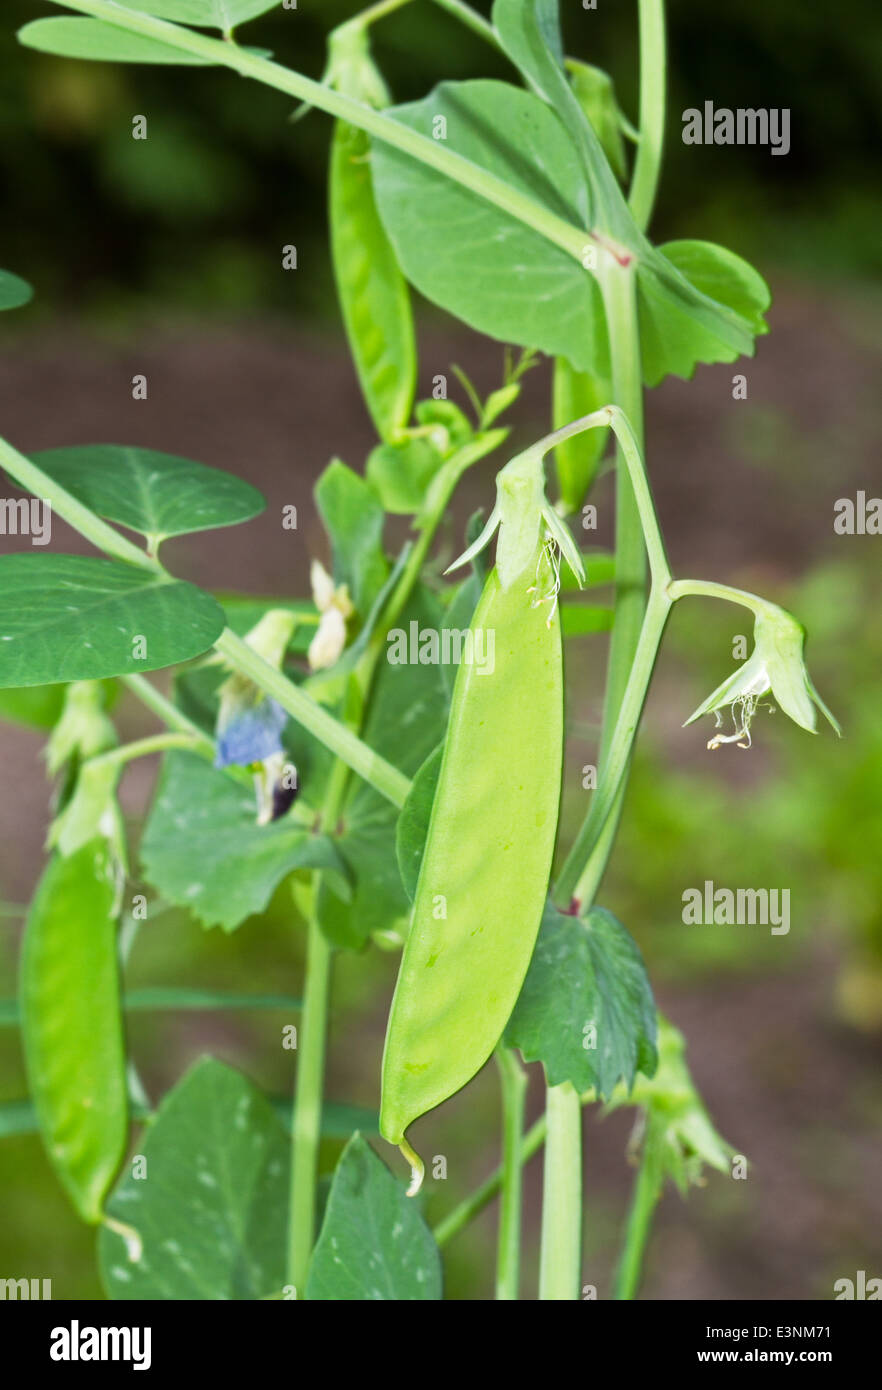 Peapods and a flower on a Garden pea plant - Stock Image